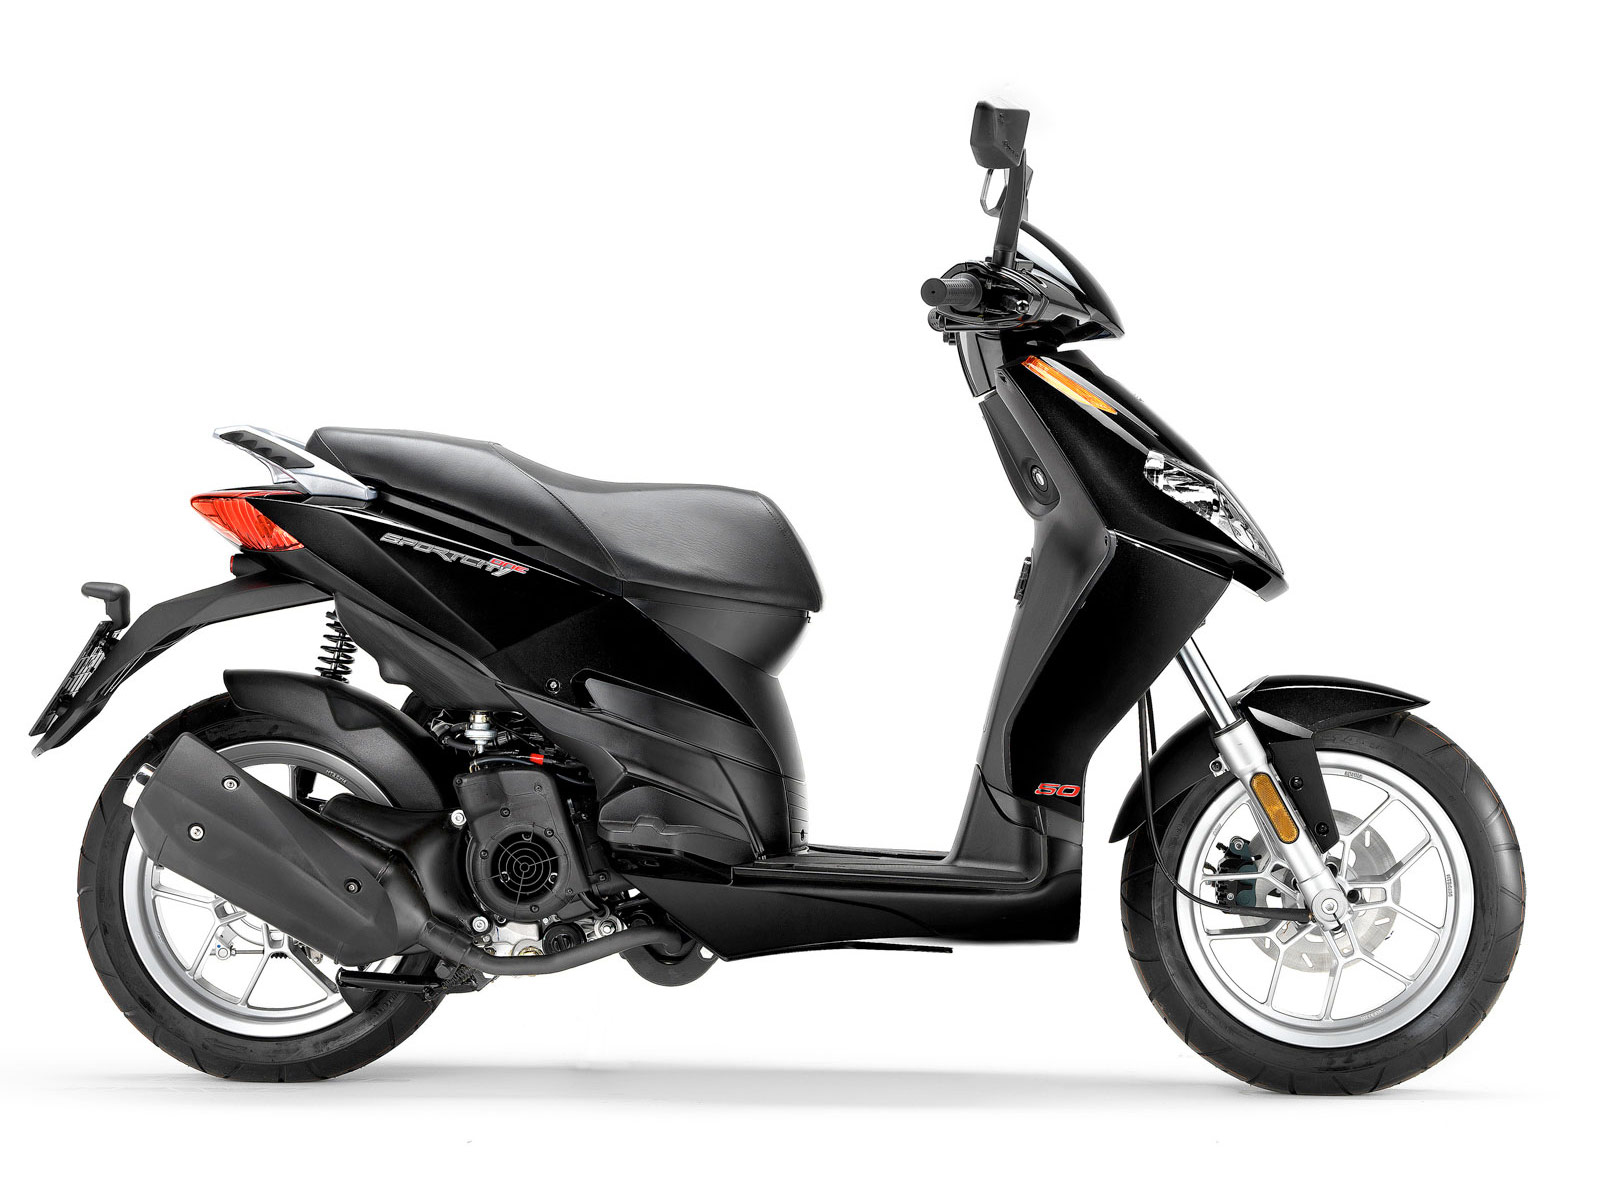 2011 aprilia sportcity 125 scooter pictures insurance information. Black Bedroom Furniture Sets. Home Design Ideas